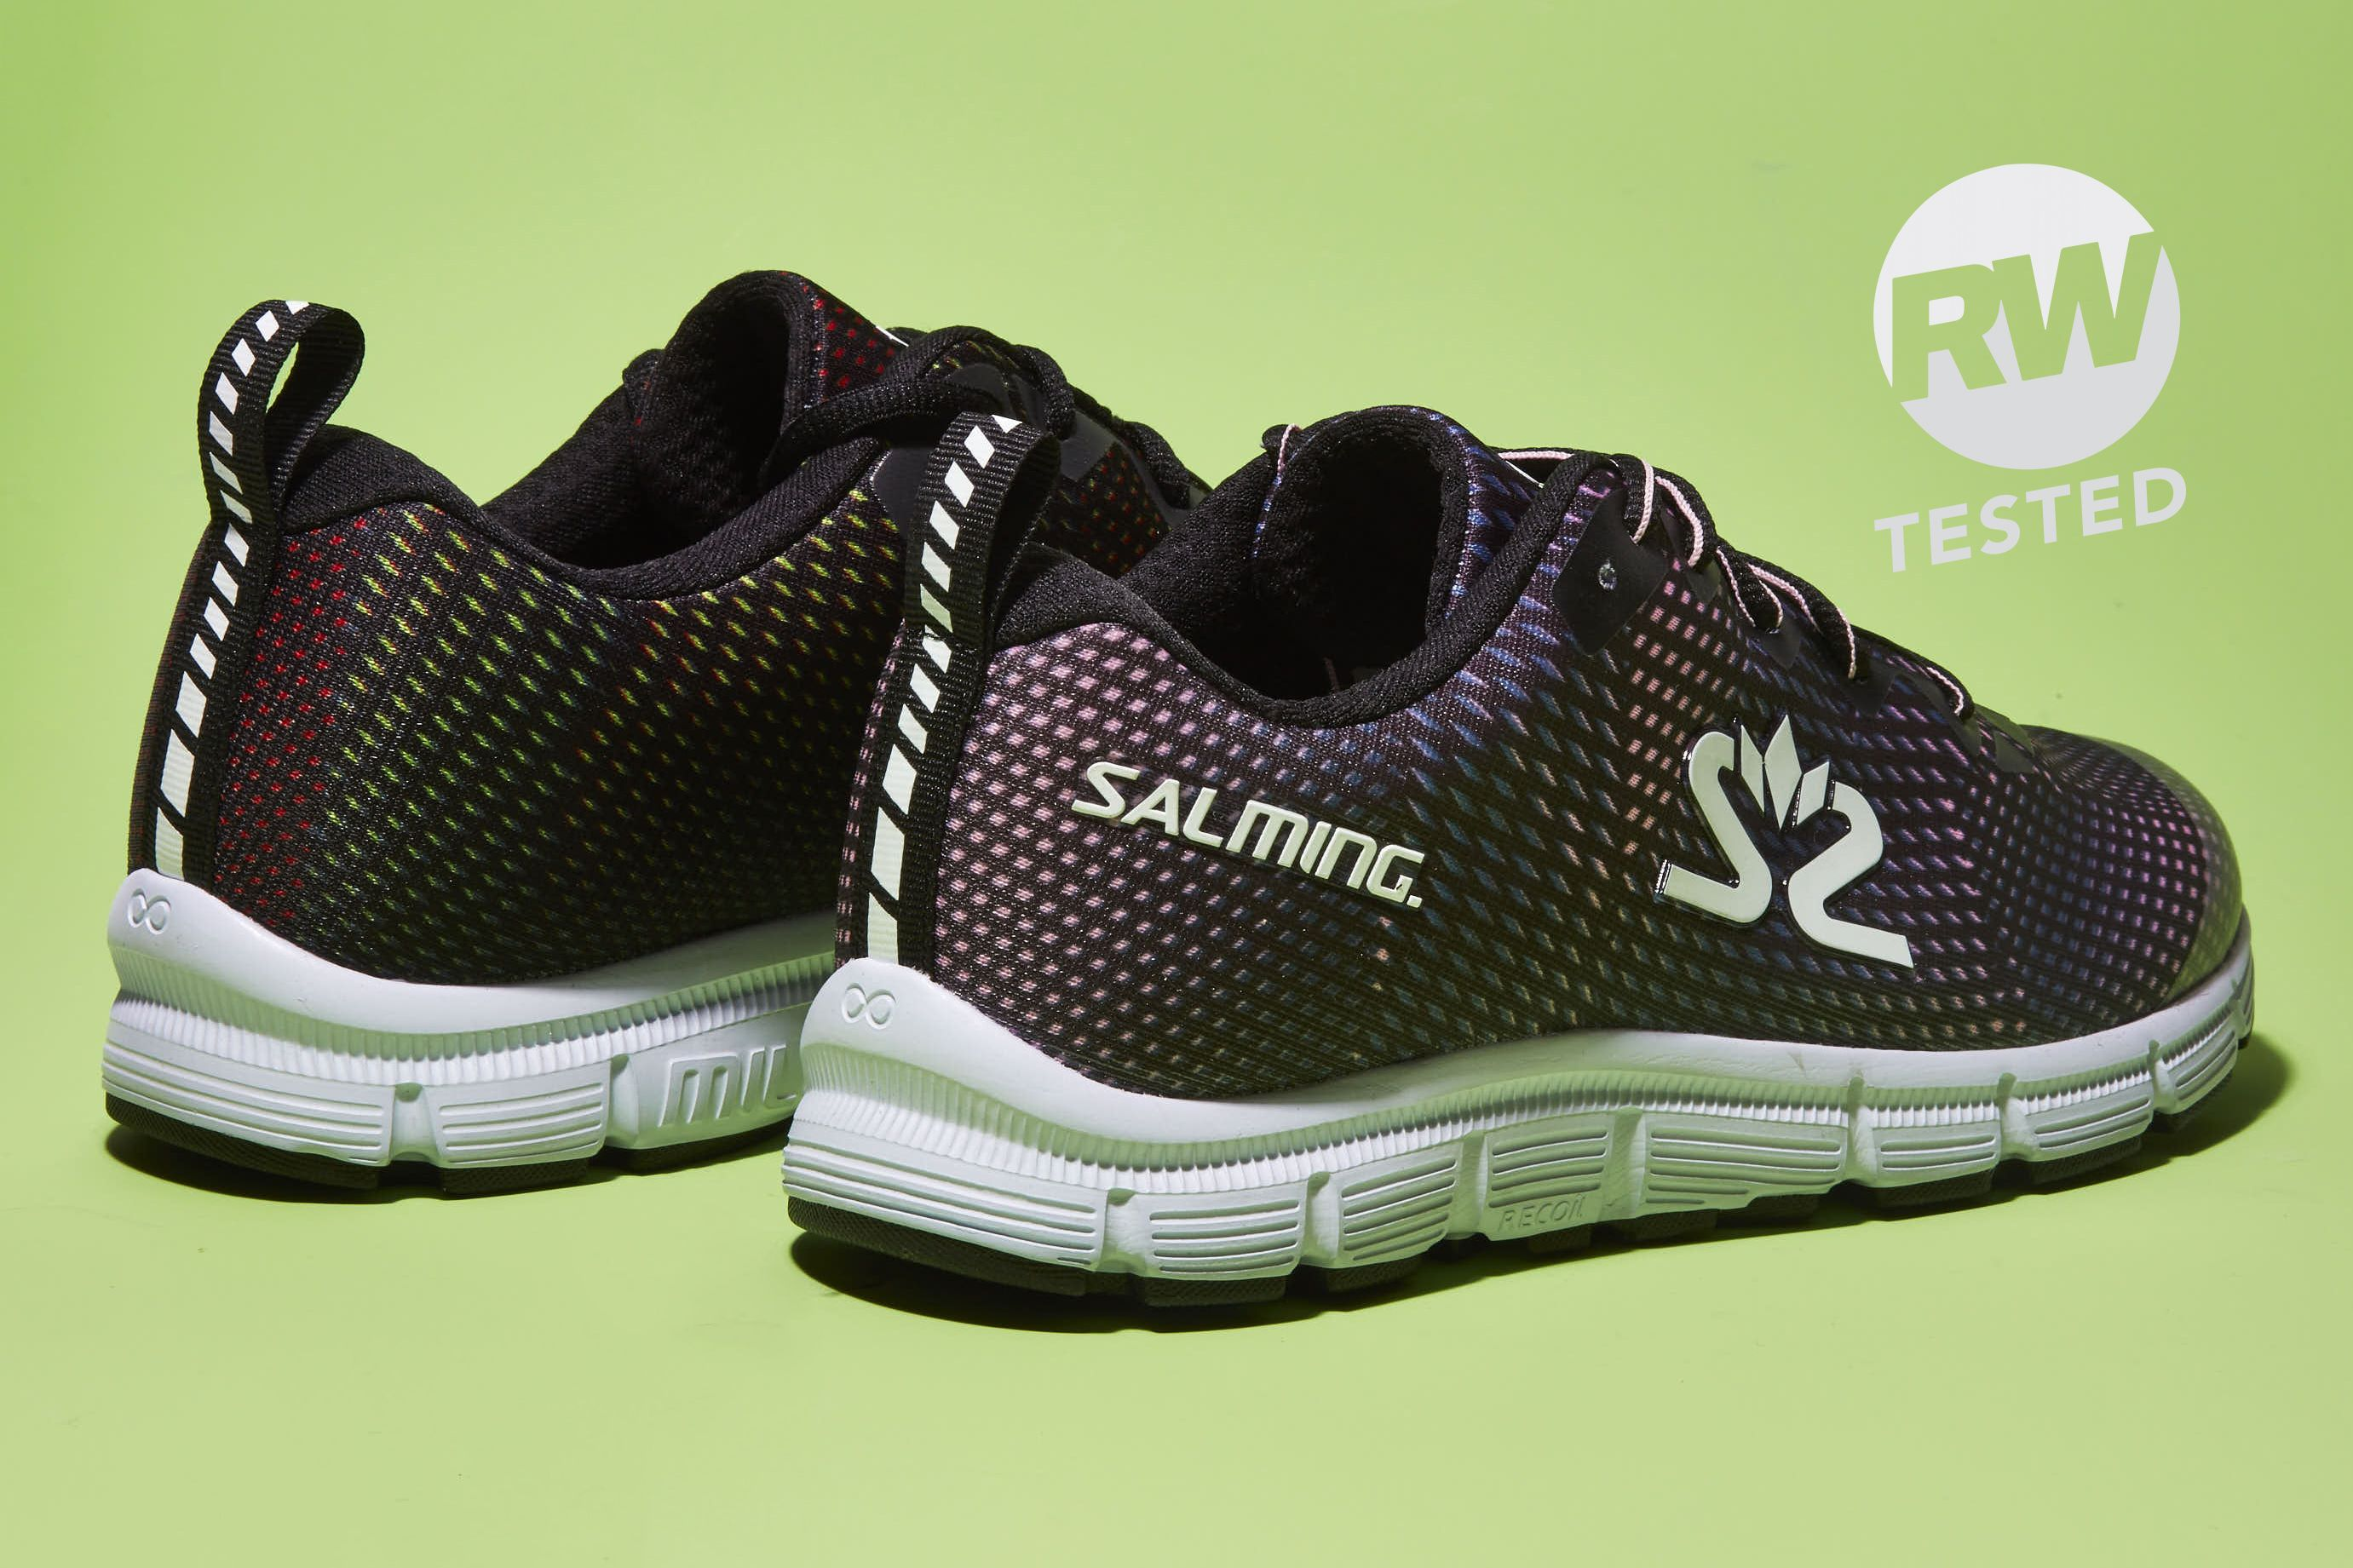 In a World of Carbon Plates and Fancy Foams, Salming's Miles Lite Keeps It Simple